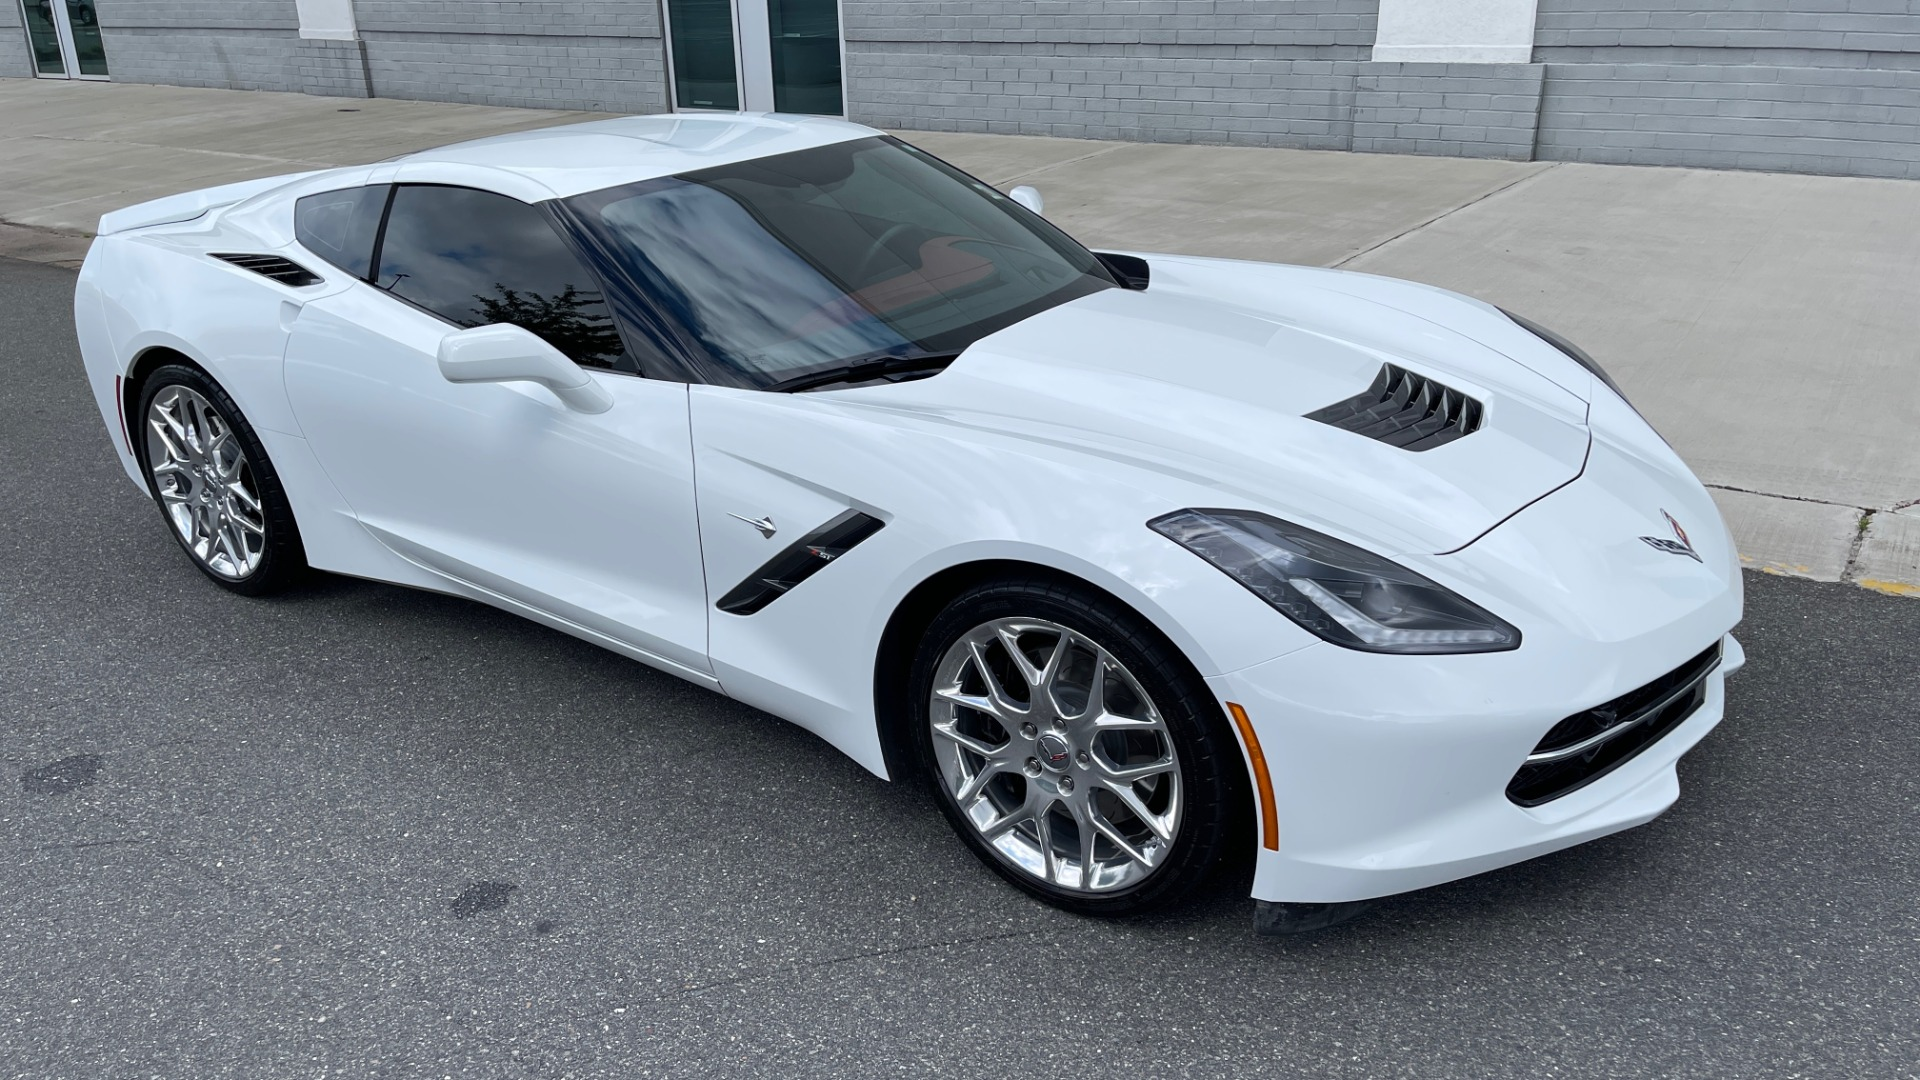 Used 2016 Chevrolet CORVETTE C7 STINGRAY COUPE Z51 3LT / NAV / PERF TRACTION MGMT / REARVIEW for sale Sold at Formula Imports in Charlotte NC 28227 5